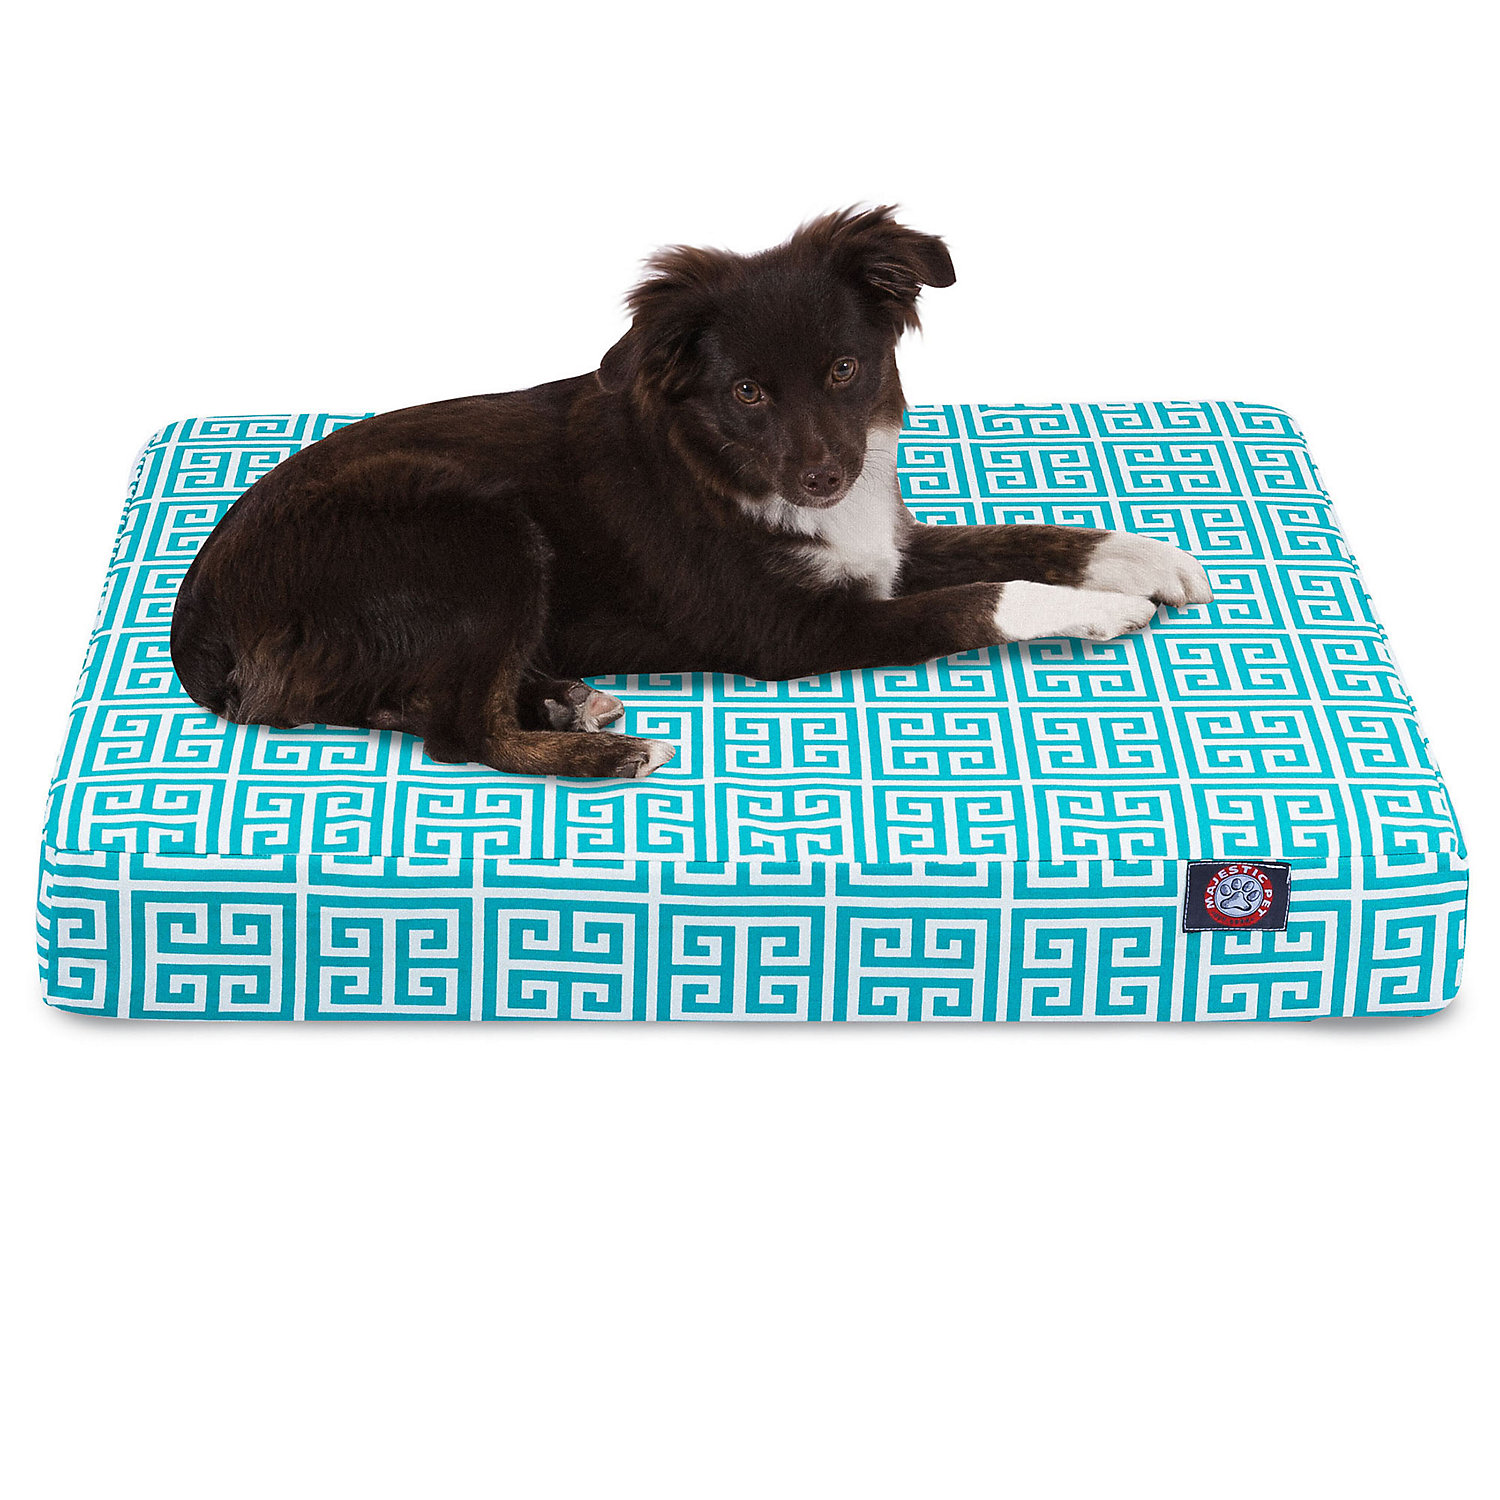 Majestic Pet Pacific Towers Orthopedic Memory Foam Rectangle Dog Bed 27 L x 20 W Small Blue